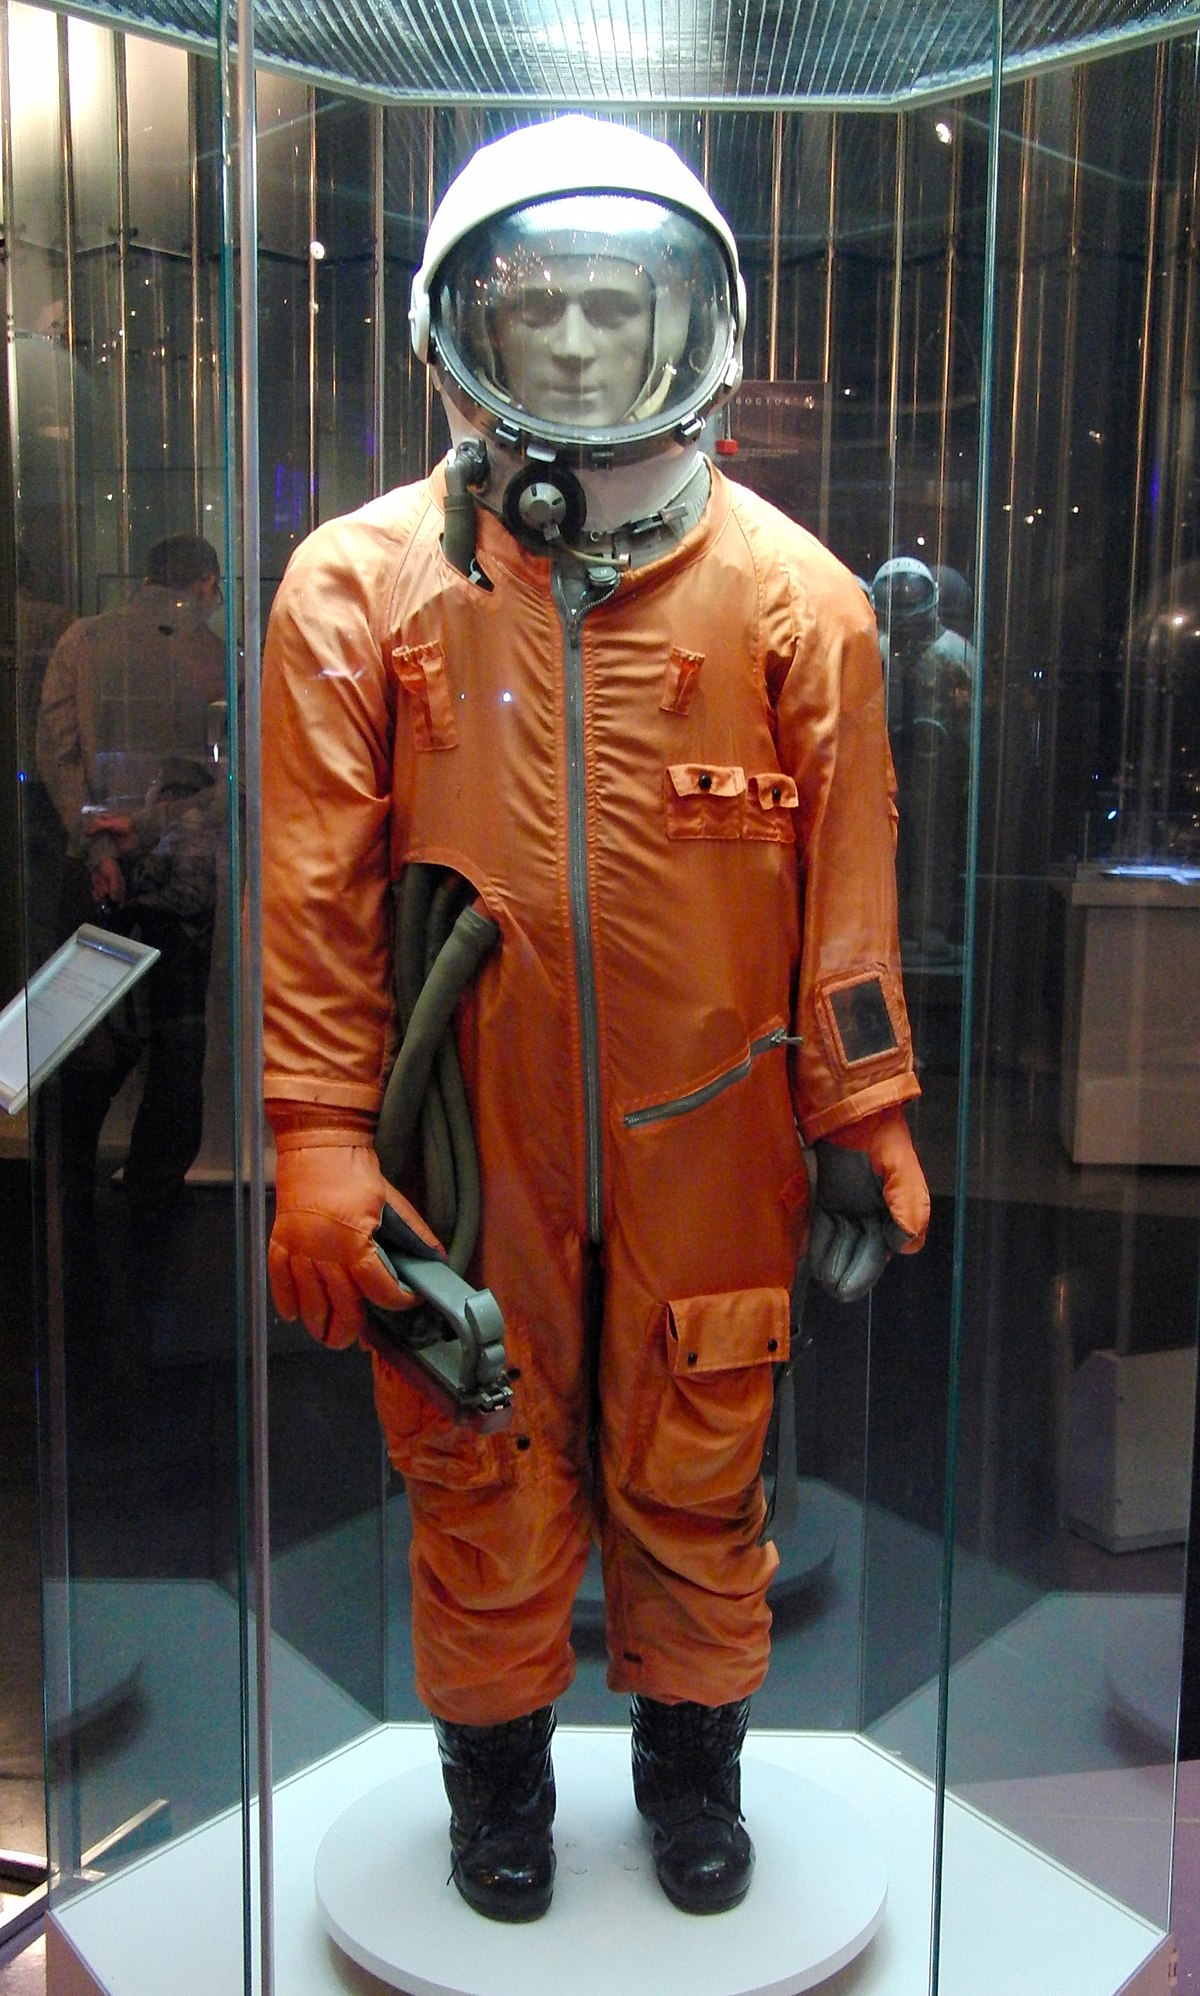 1 The Magician On Pinterest: SK-1 Spacesuit